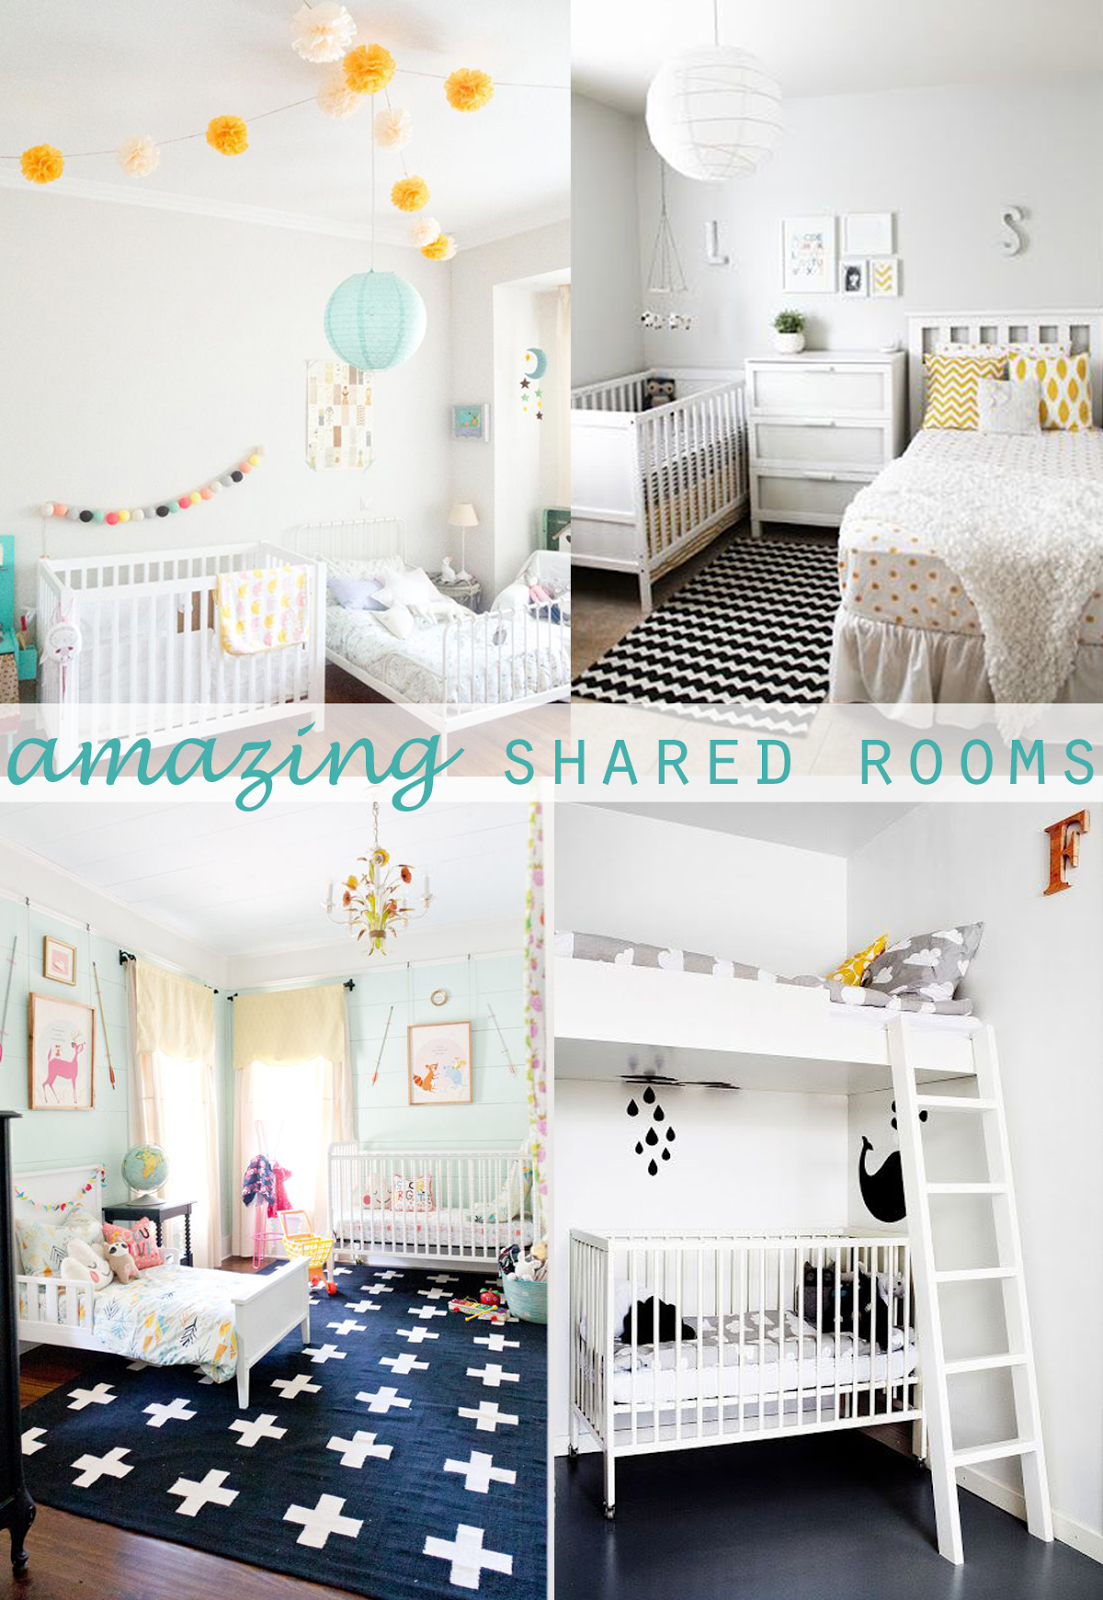 Pin by monica jesus on apartment living boy girl shared bedroom shared rooms kids bedroom - Boy and girl shared room ideas bunk bed ...